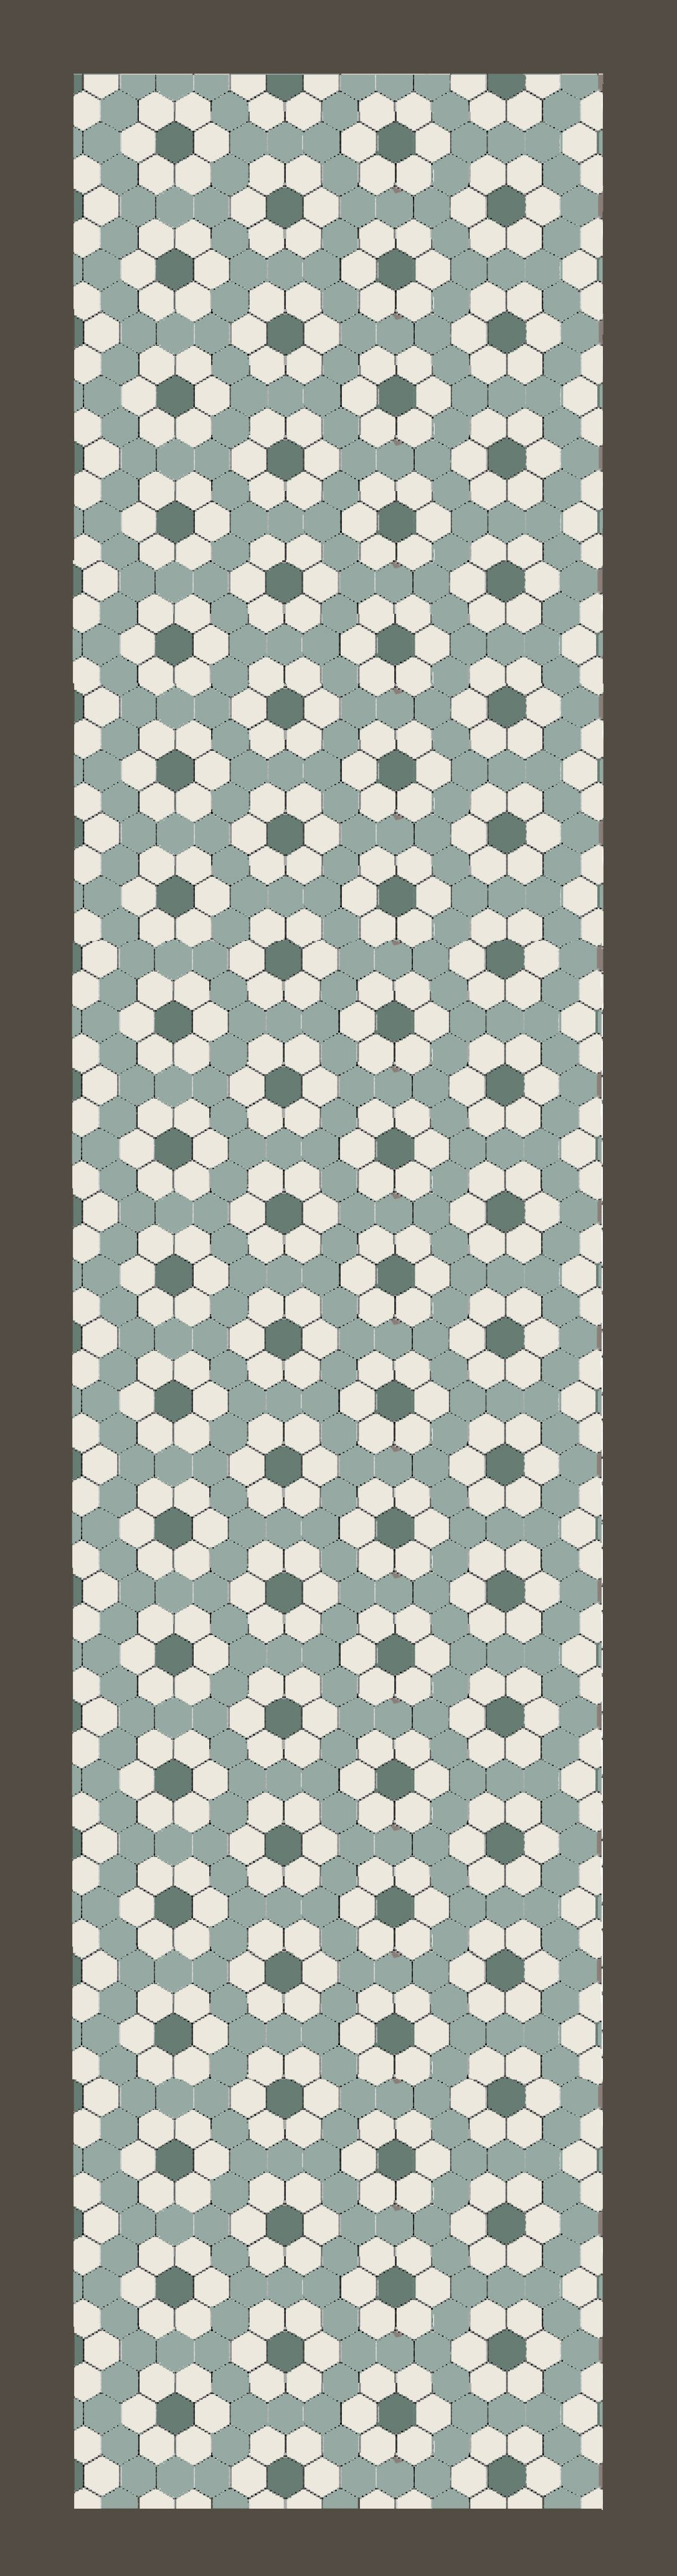 In De Gang Hexagon 10x10 Cm Blue Pale Blanc Vert Pale Antraciet Vanaf 89 Euro Per M2 Hexagon Tile Carreaux Ciment Carrelage Salle De Bain Carrelage Hexagone